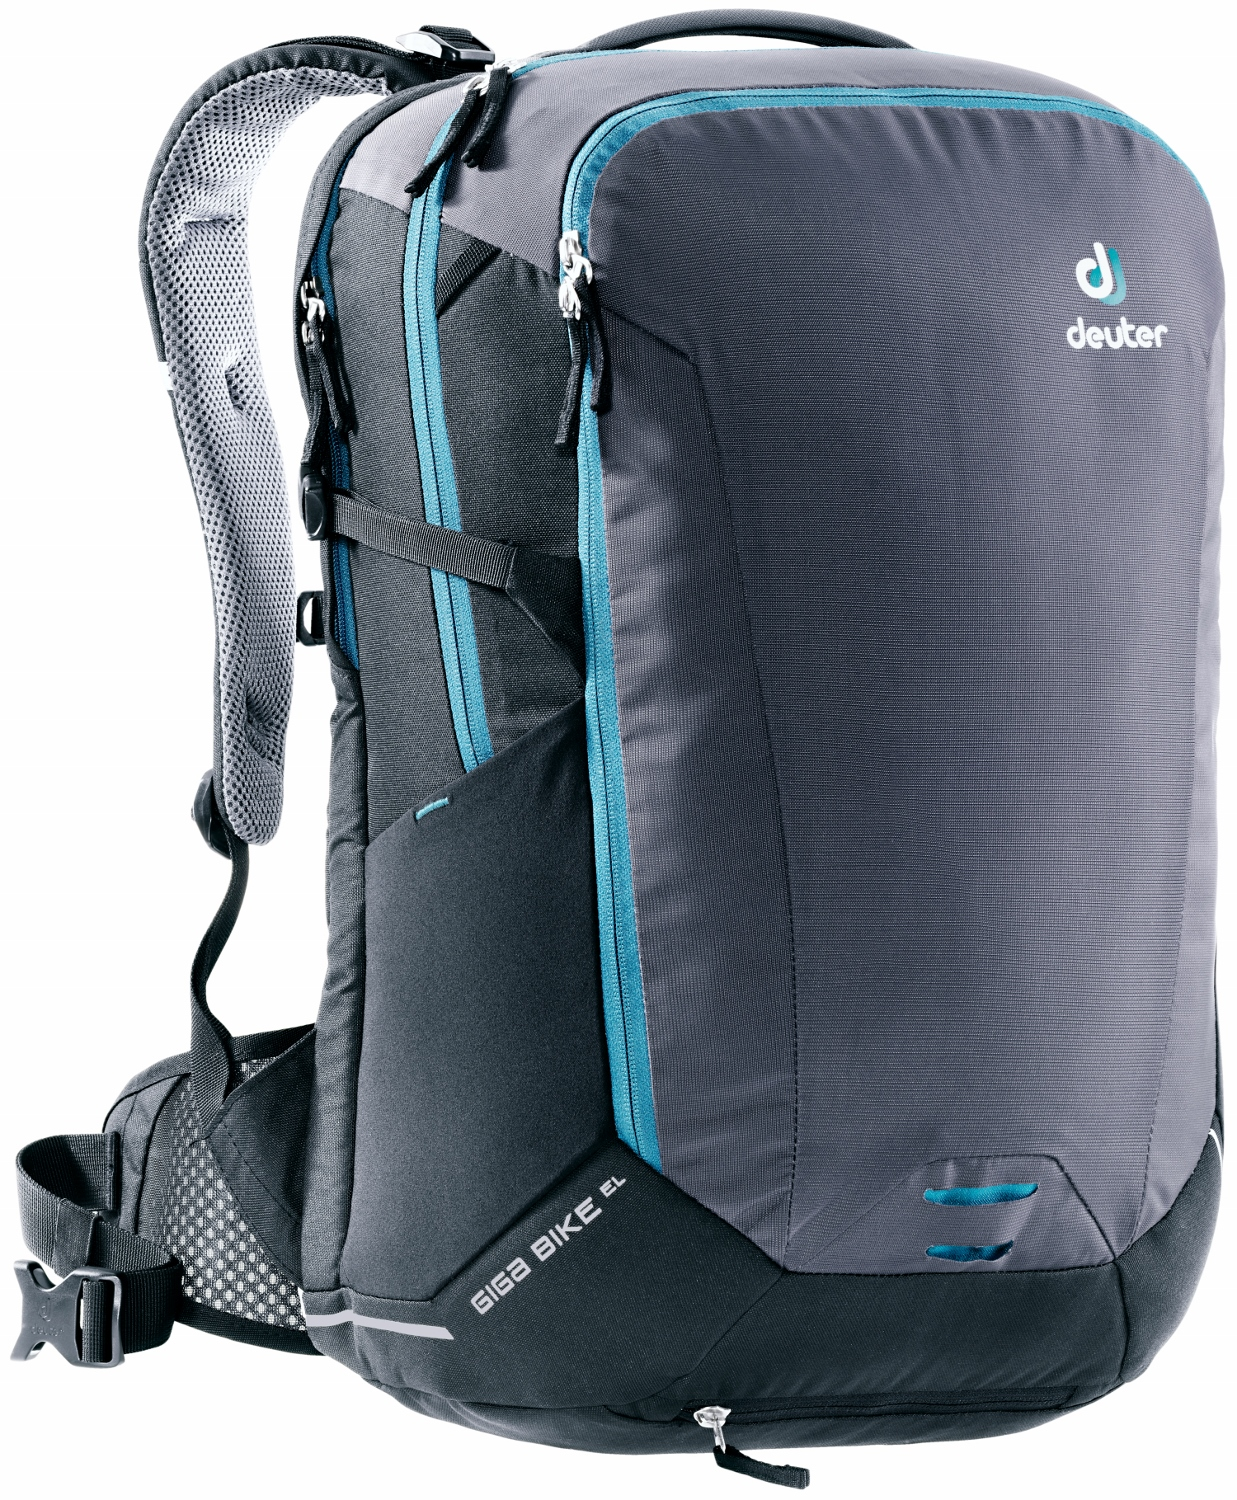 deuter giga bike 2017 el rucksack mit laptopfach 17 3. Black Bedroom Furniture Sets. Home Design Ideas